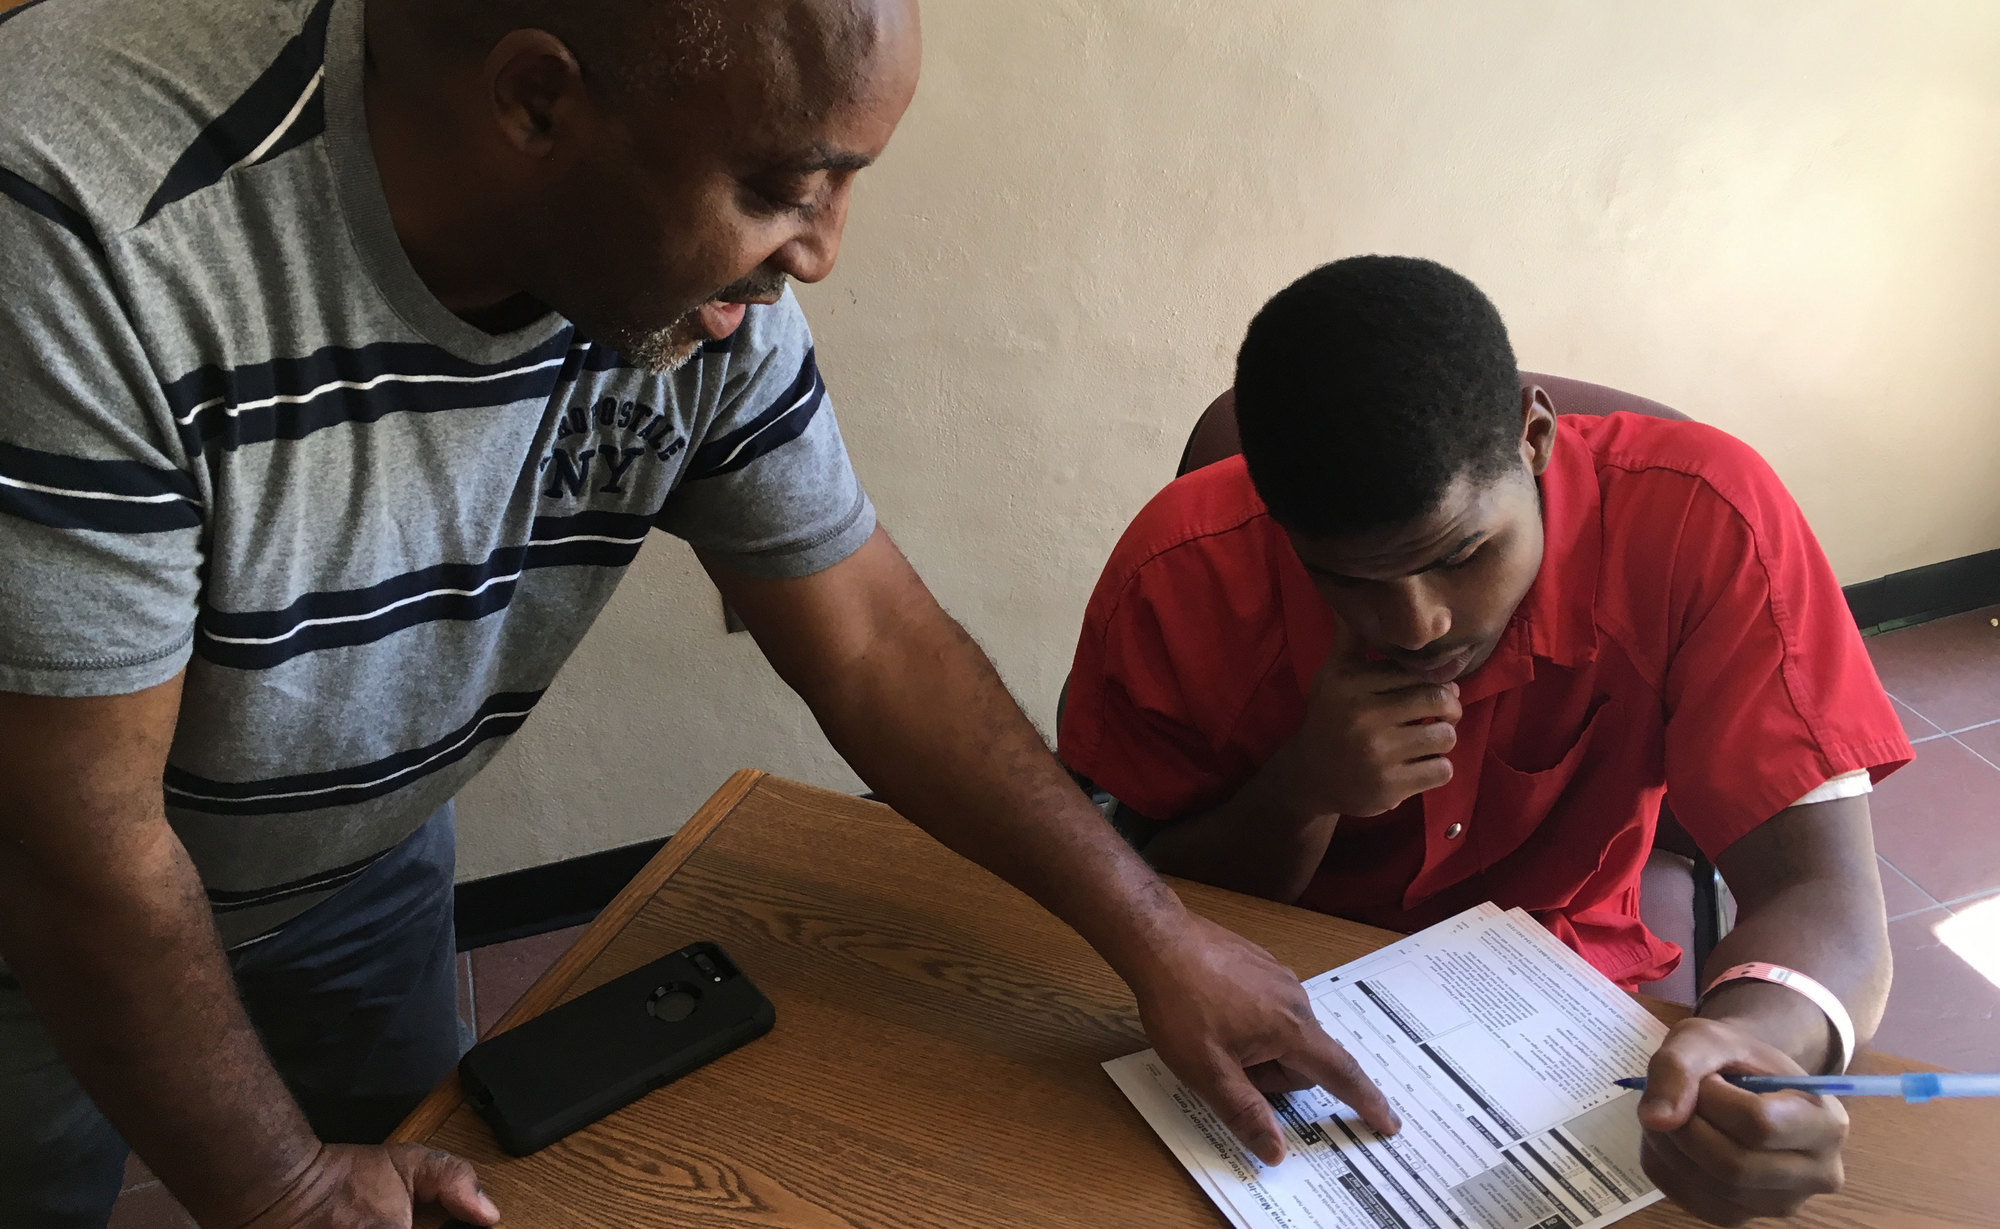 Pastor Kenneth Glasgow helps Spencer Trawick, an inmate at the Dothan City Jail in Dothan, Ala., fill out a voter registration form in June 2017.